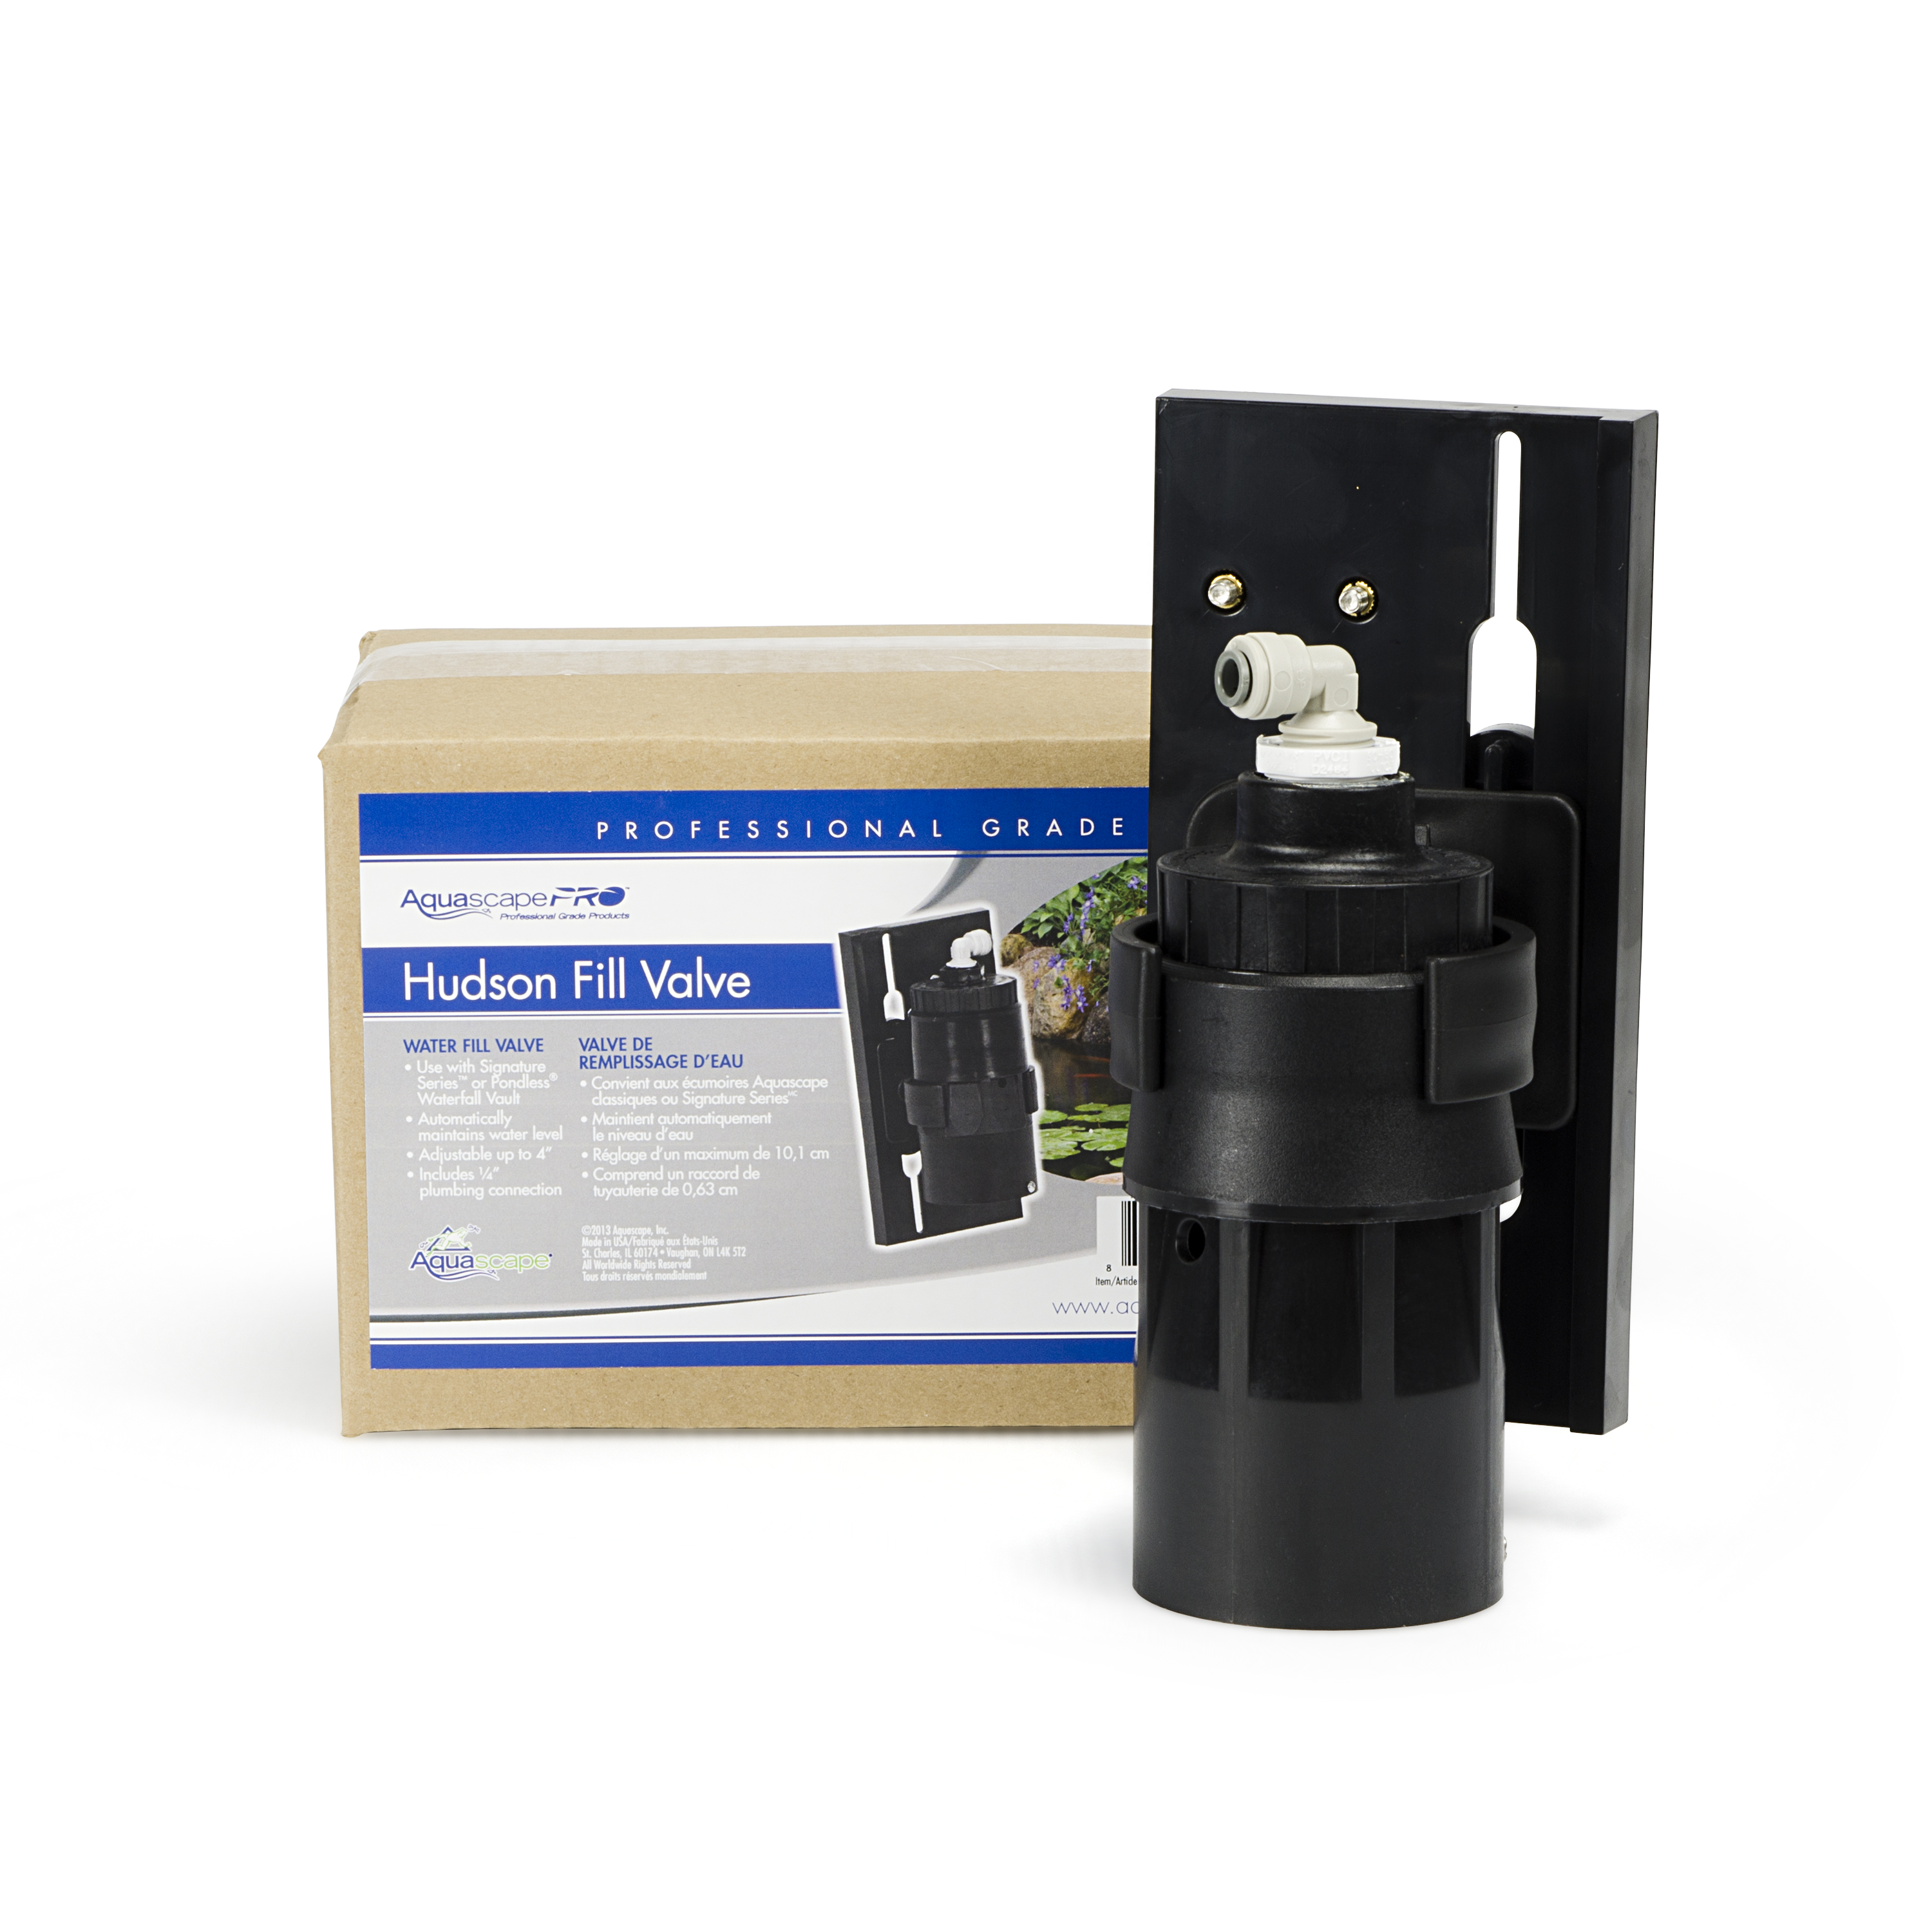 Aquascape Compact Water Fill Valve For Pond Water Level Consistency